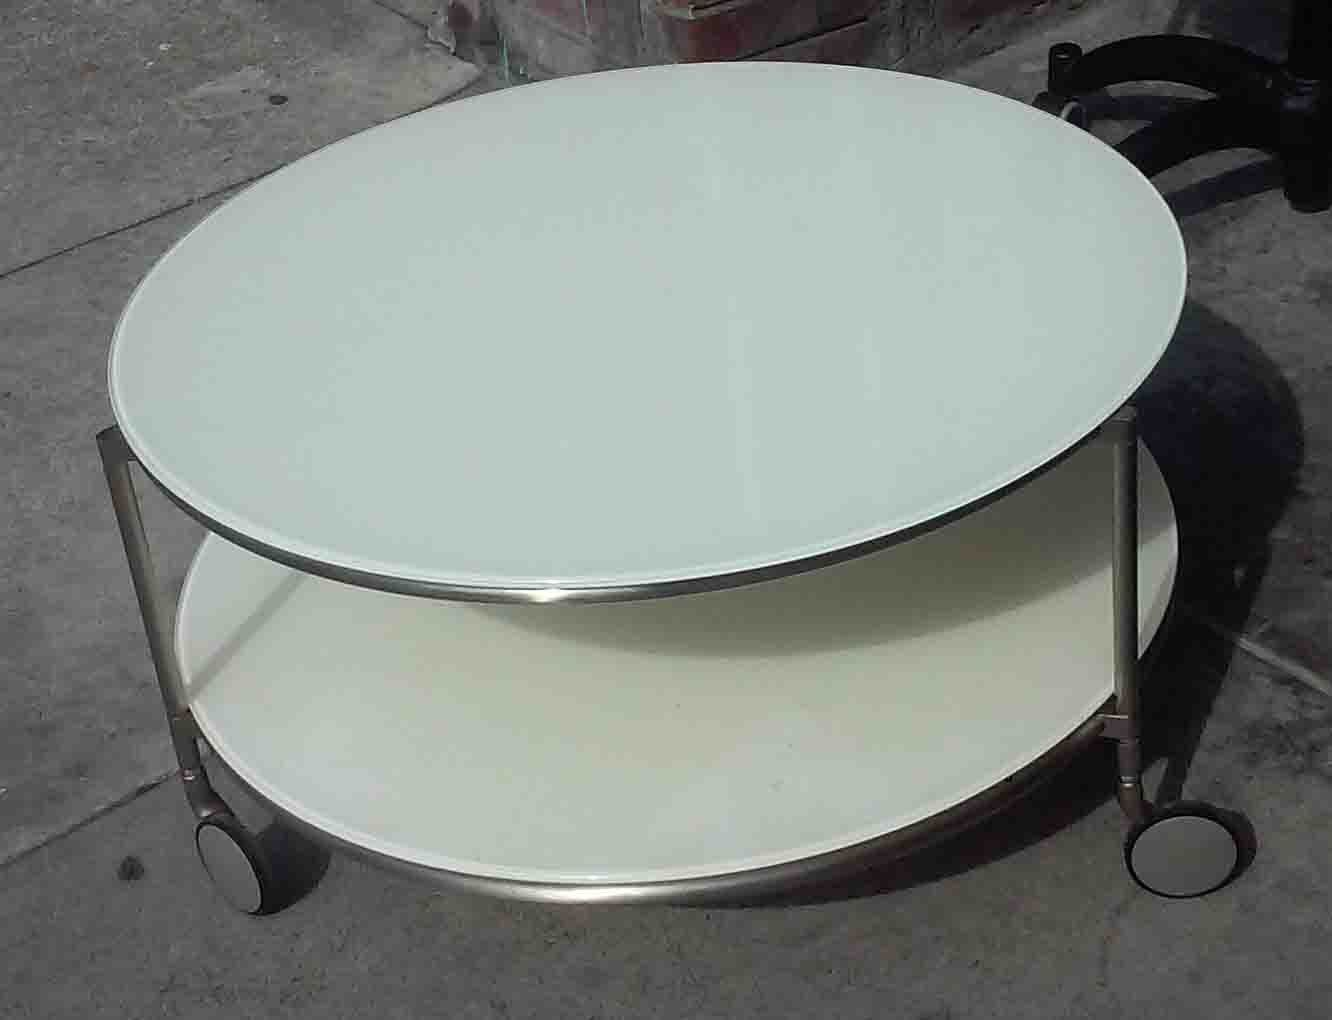 Pin By Linda On Wheels On Tables Mid Century Glass Coffee Table Coffee Table With Wheels Glass Coffee Table